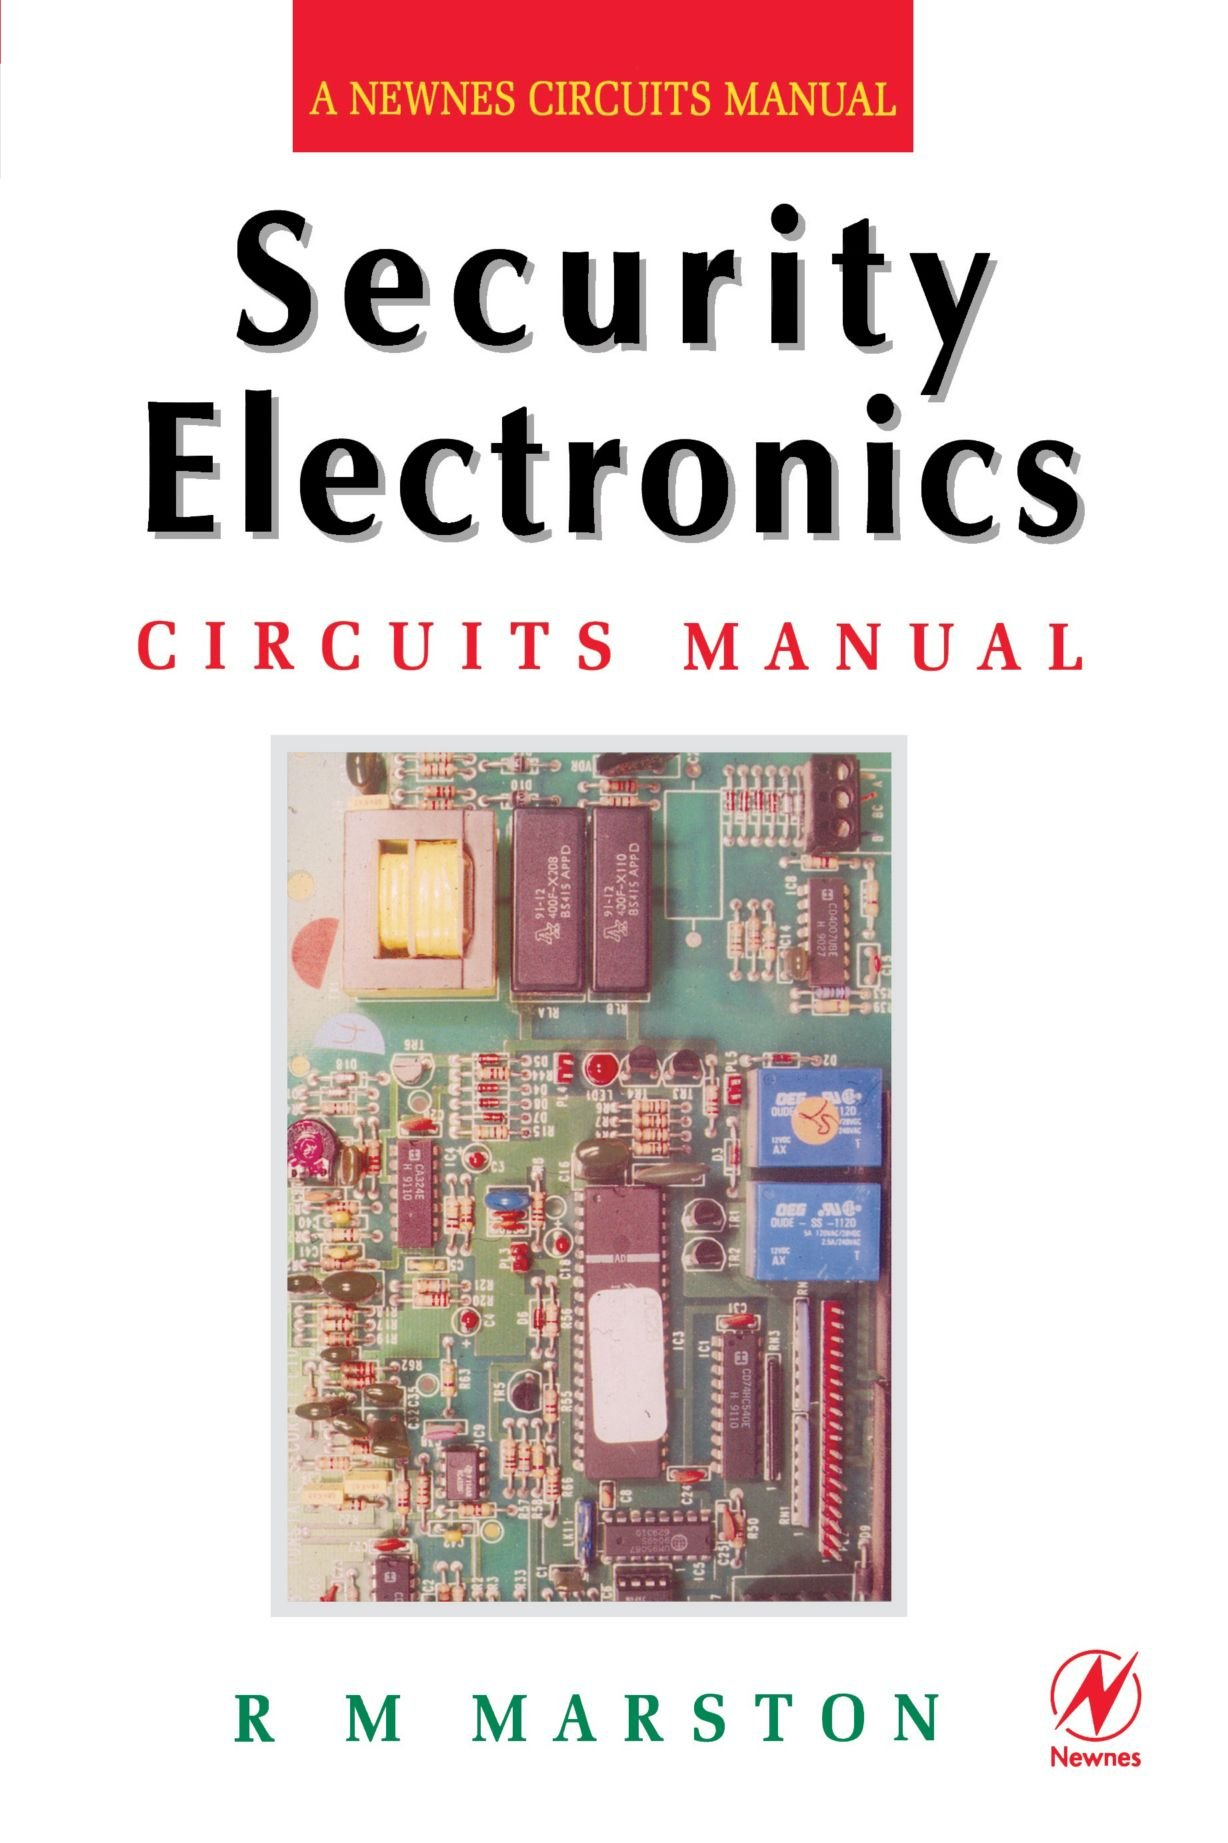 Electronic Circuit Manual Induction Cooker Pcb Diagram Electricalequipmentcircuit Array Security Electronics Circuits Amazon Co Uk R M Marston Rh